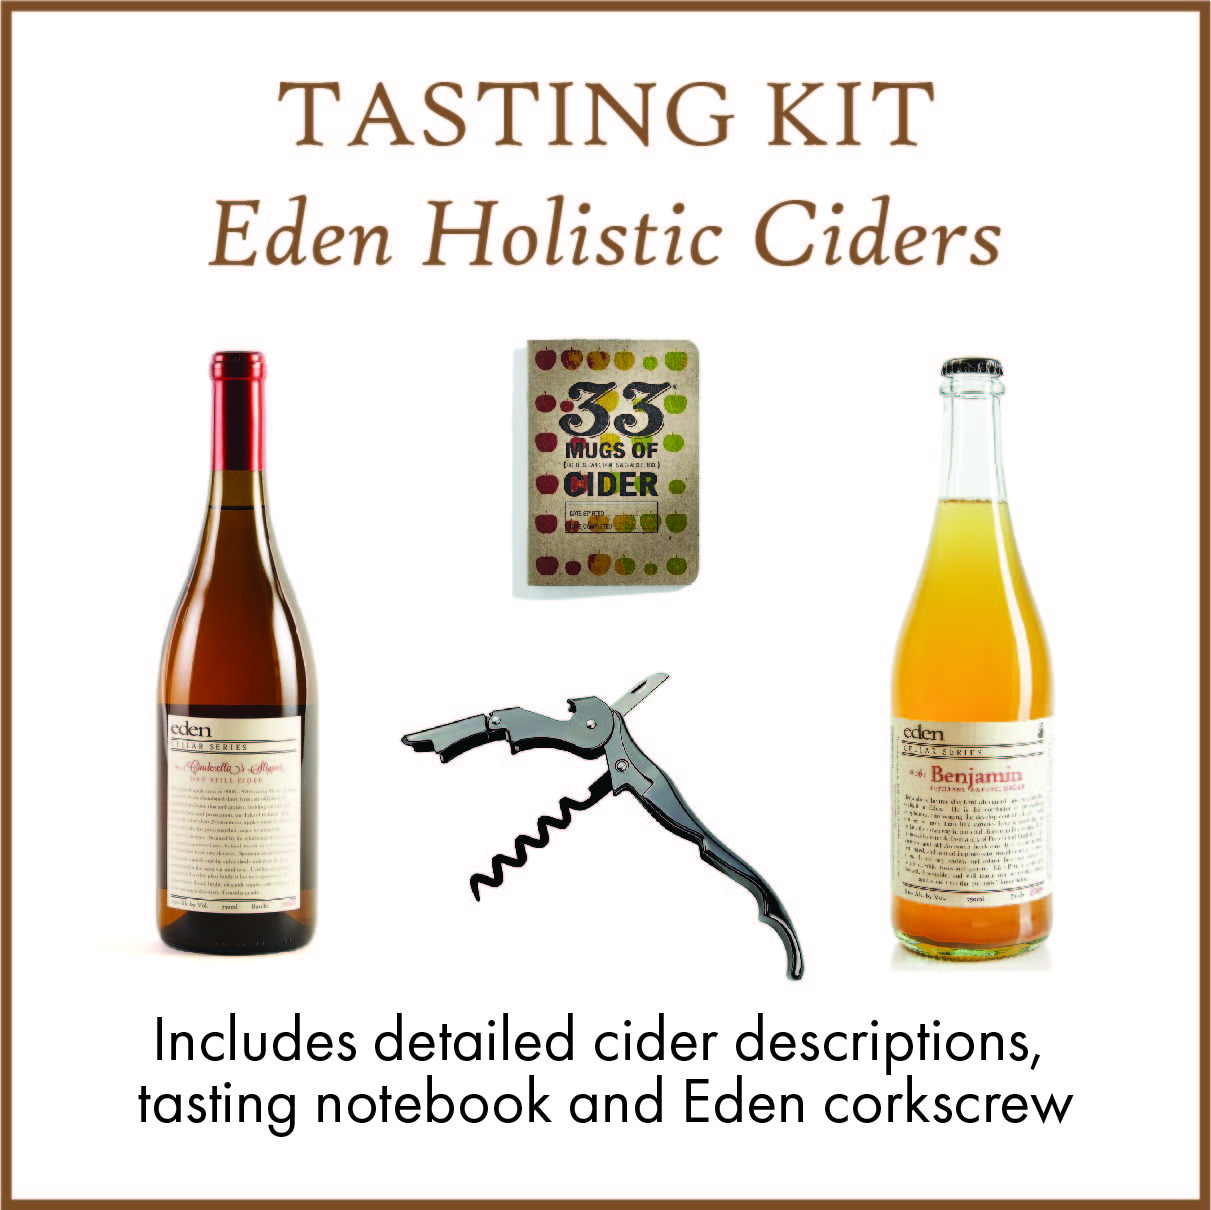 Tasting Kit - Eden Holistic Ciders